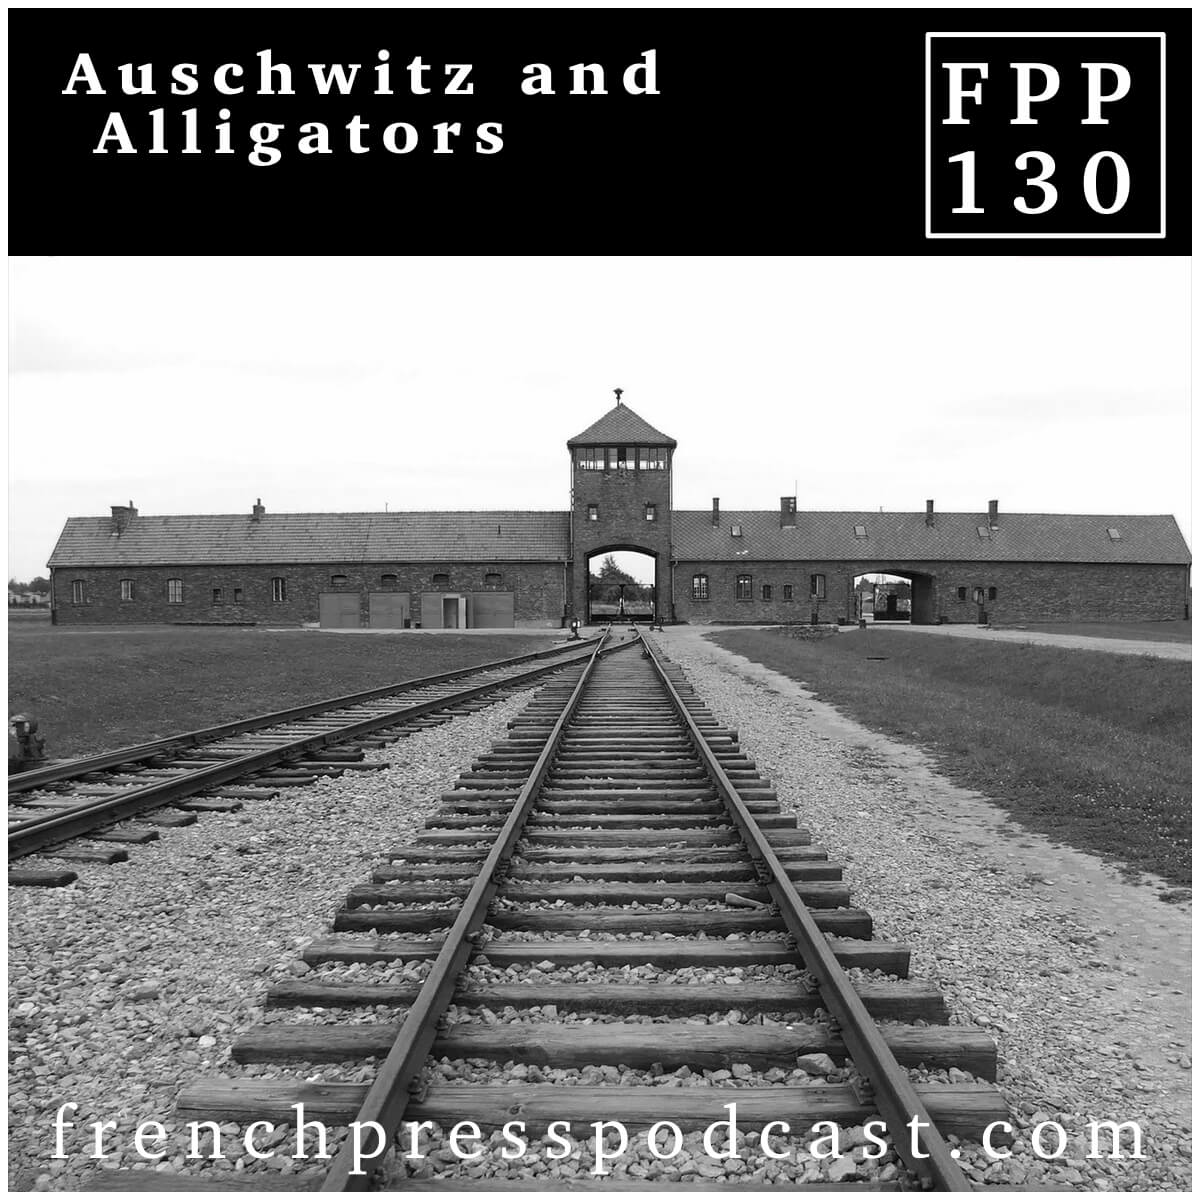 Auschwitz and Alligators Podcast